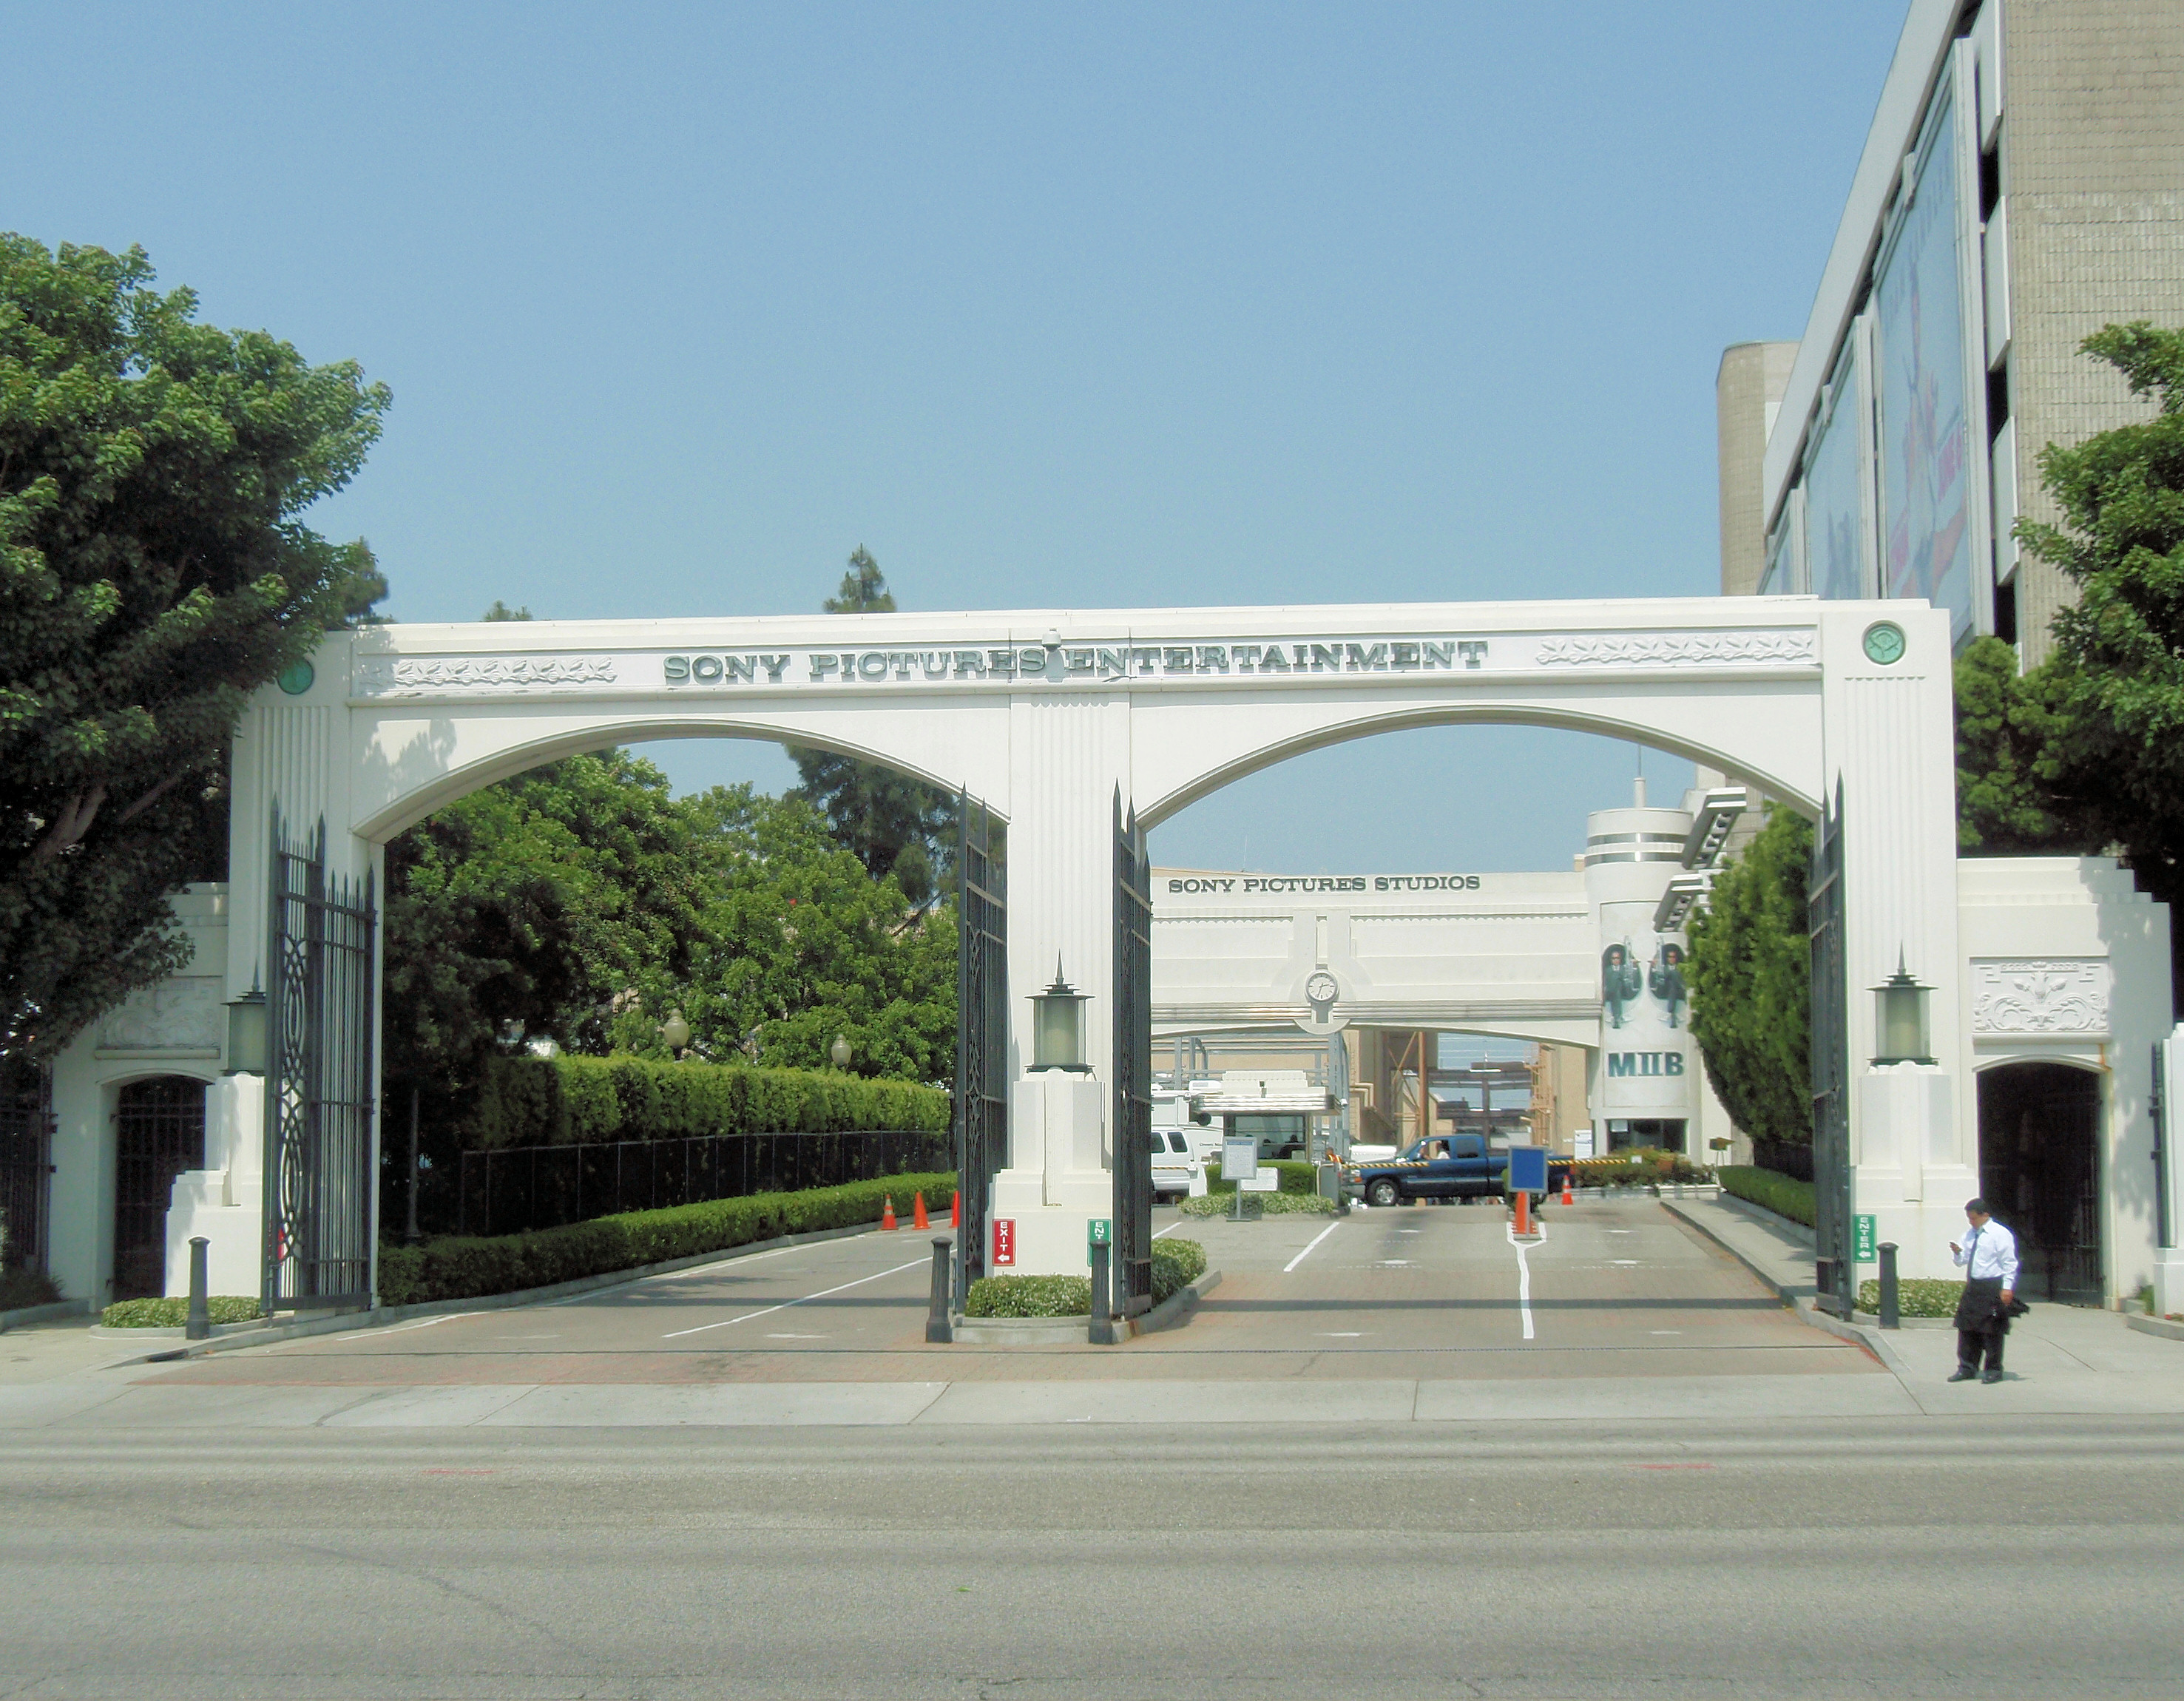 https://i0.wp.com/upload.wikimedia.org/wikipedia/commons/9/94/Sony_Pictures_Entertainment_entrance_1.jpg